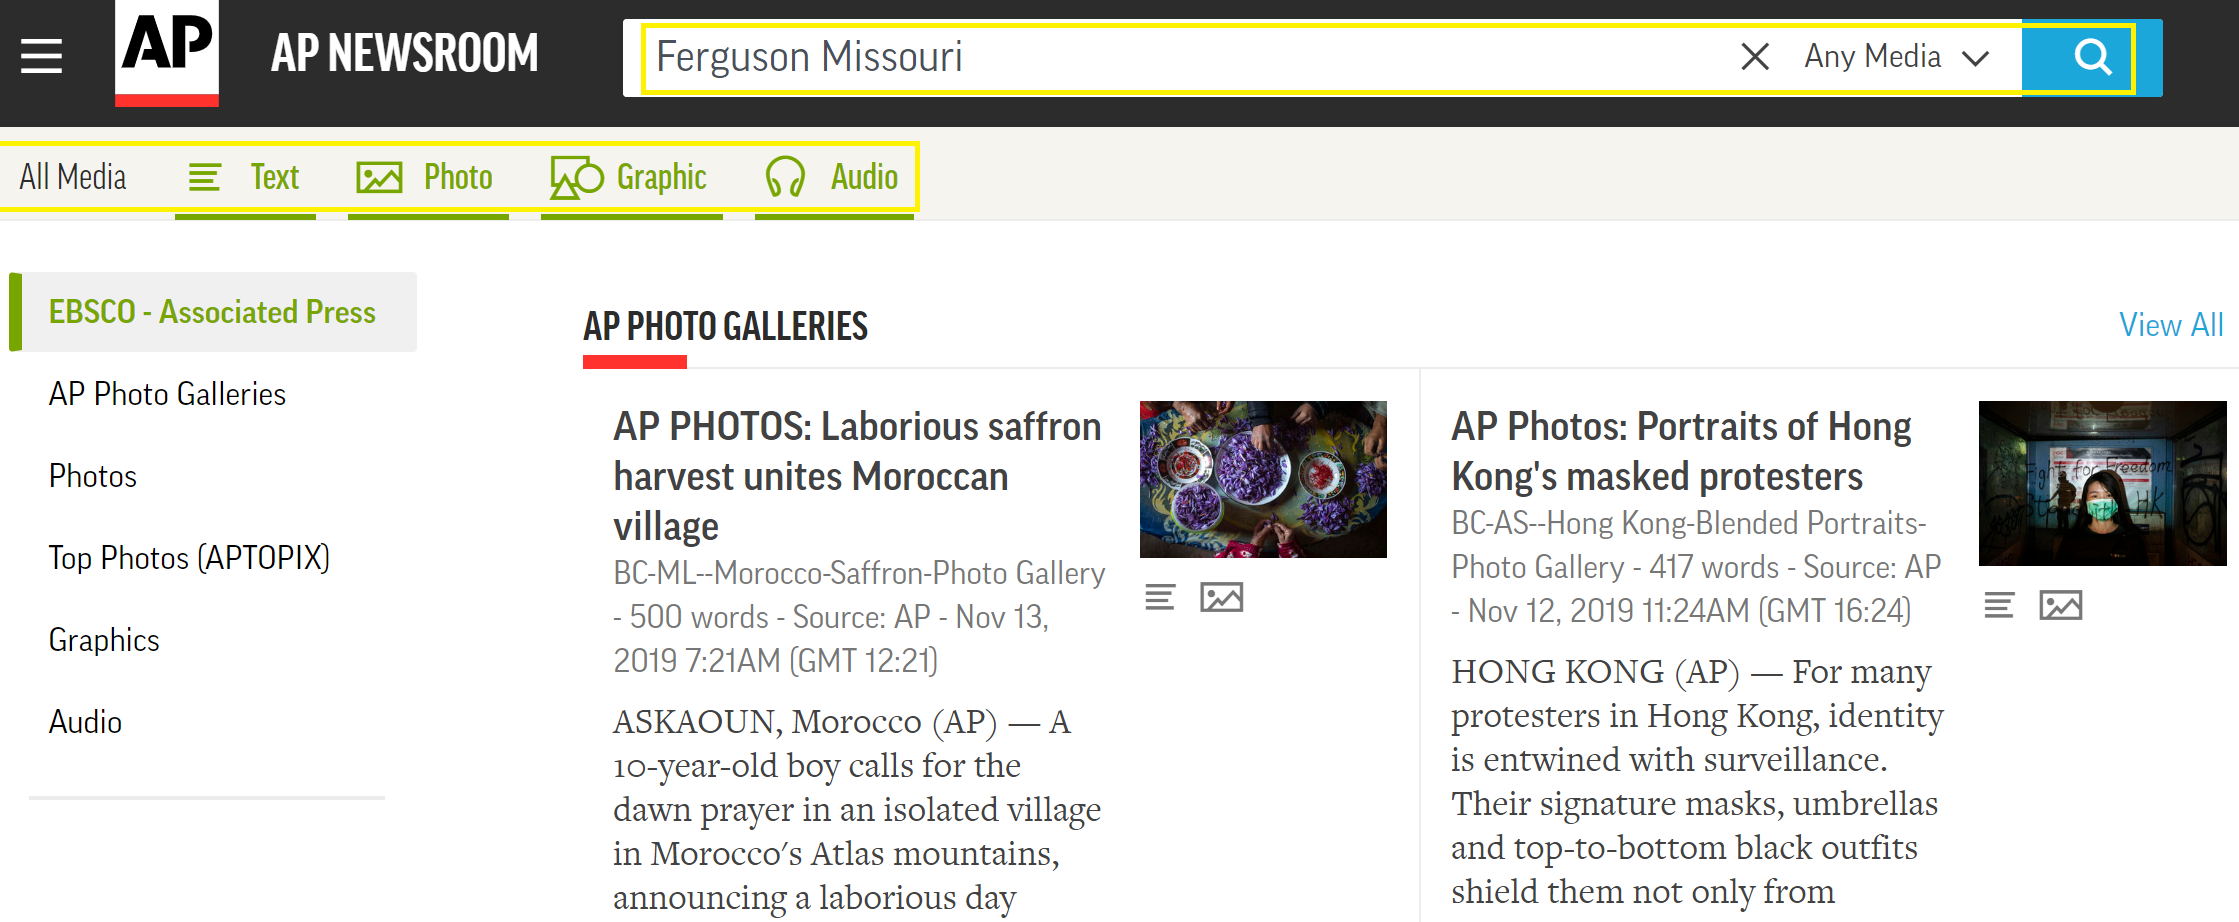 AP Newsroom landing and search page